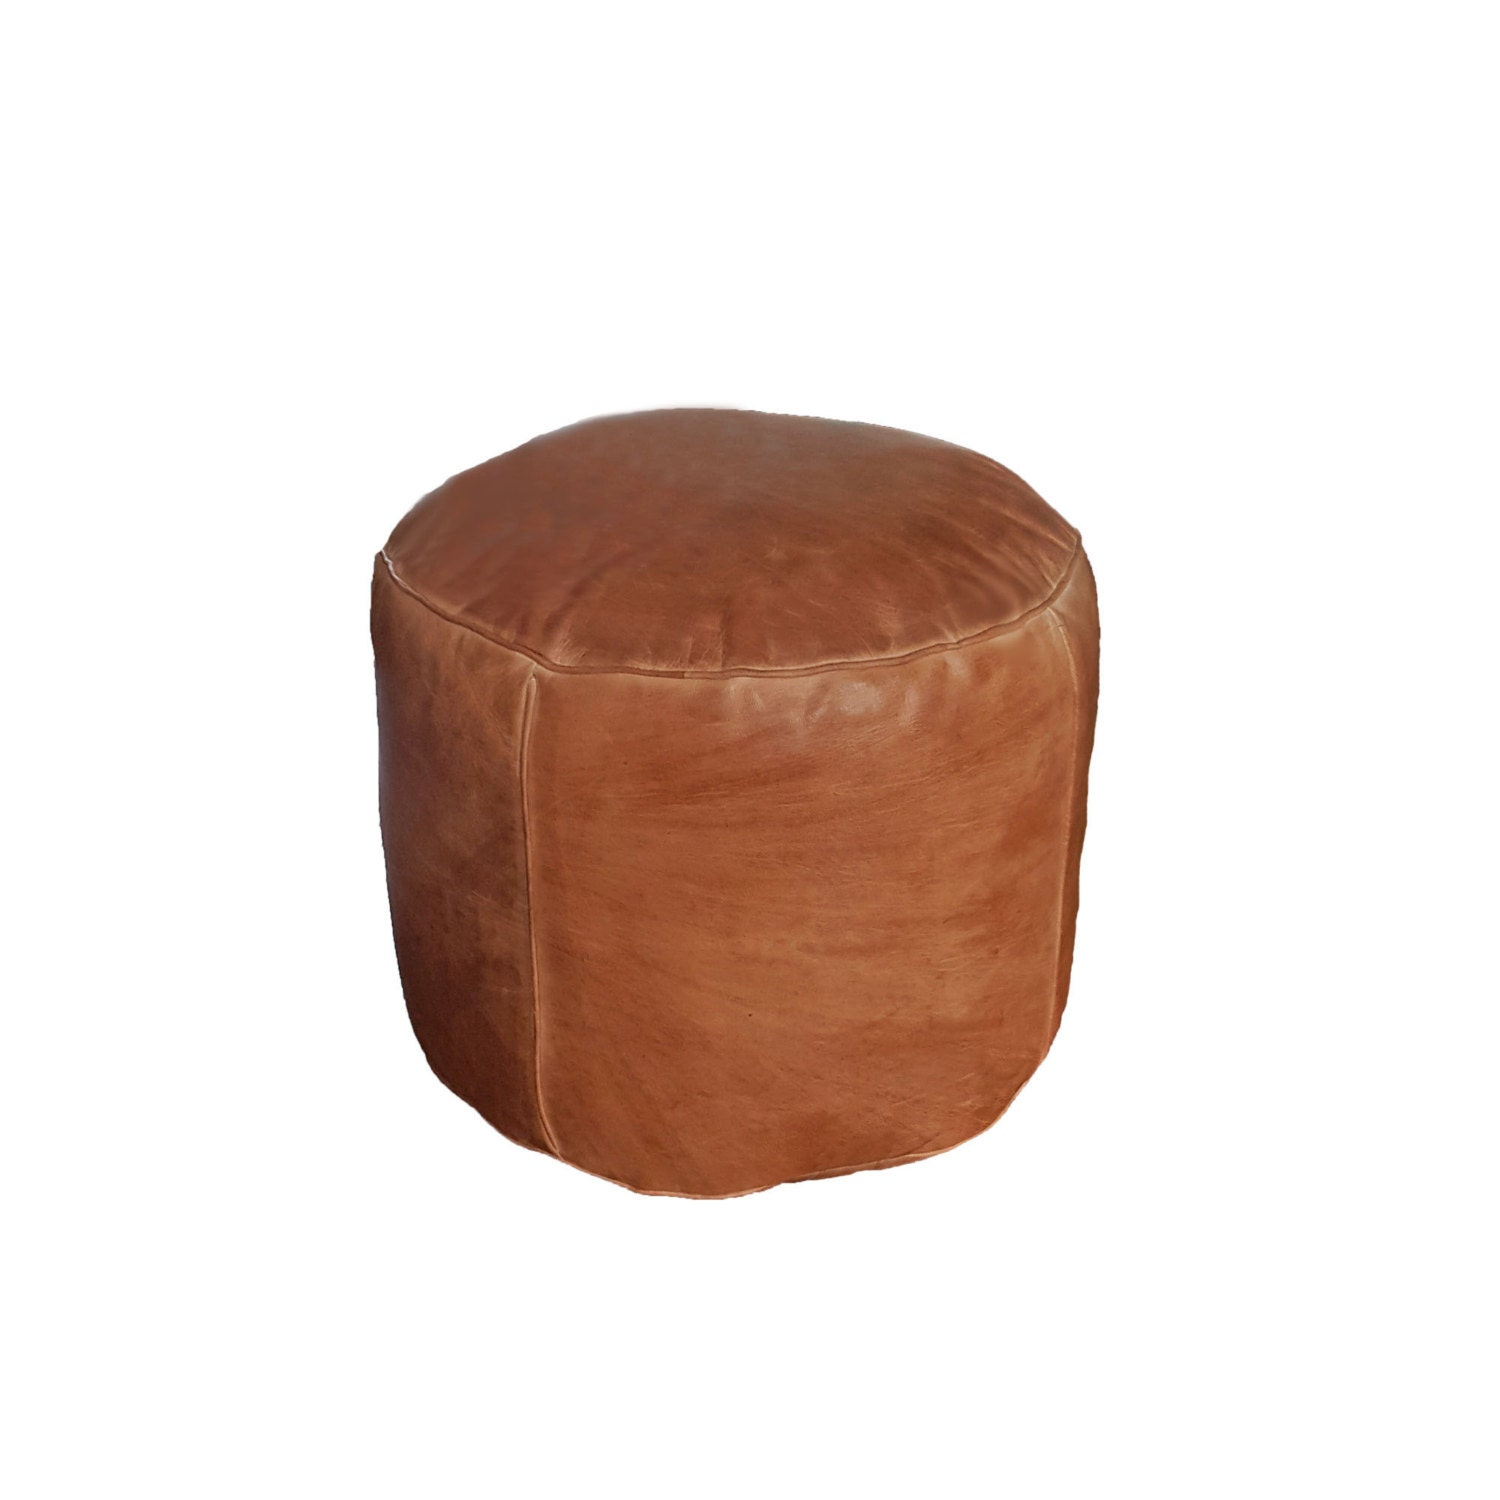 Round Leather Pouf Ottoman Natural Brown Leather